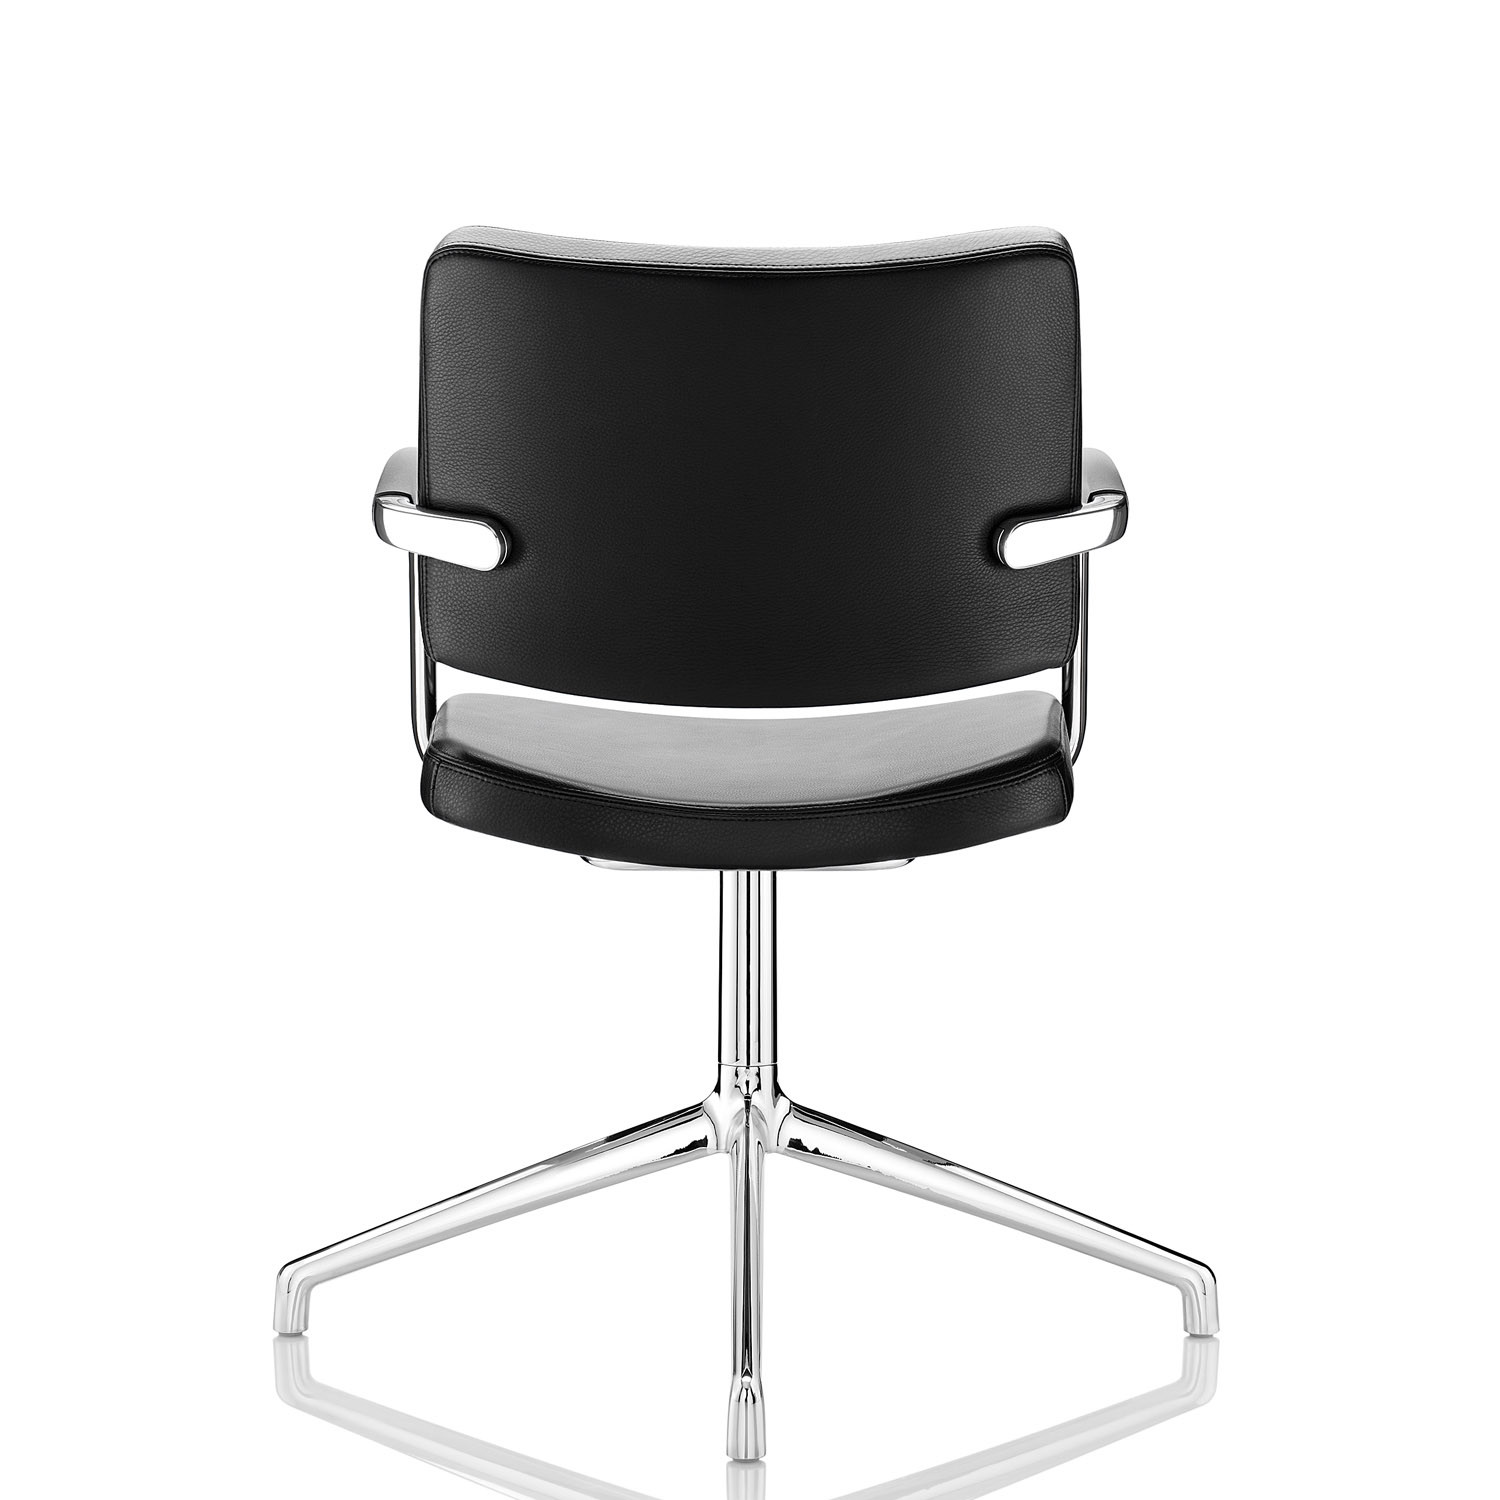 Pro Visitor's Chair from Boss Design